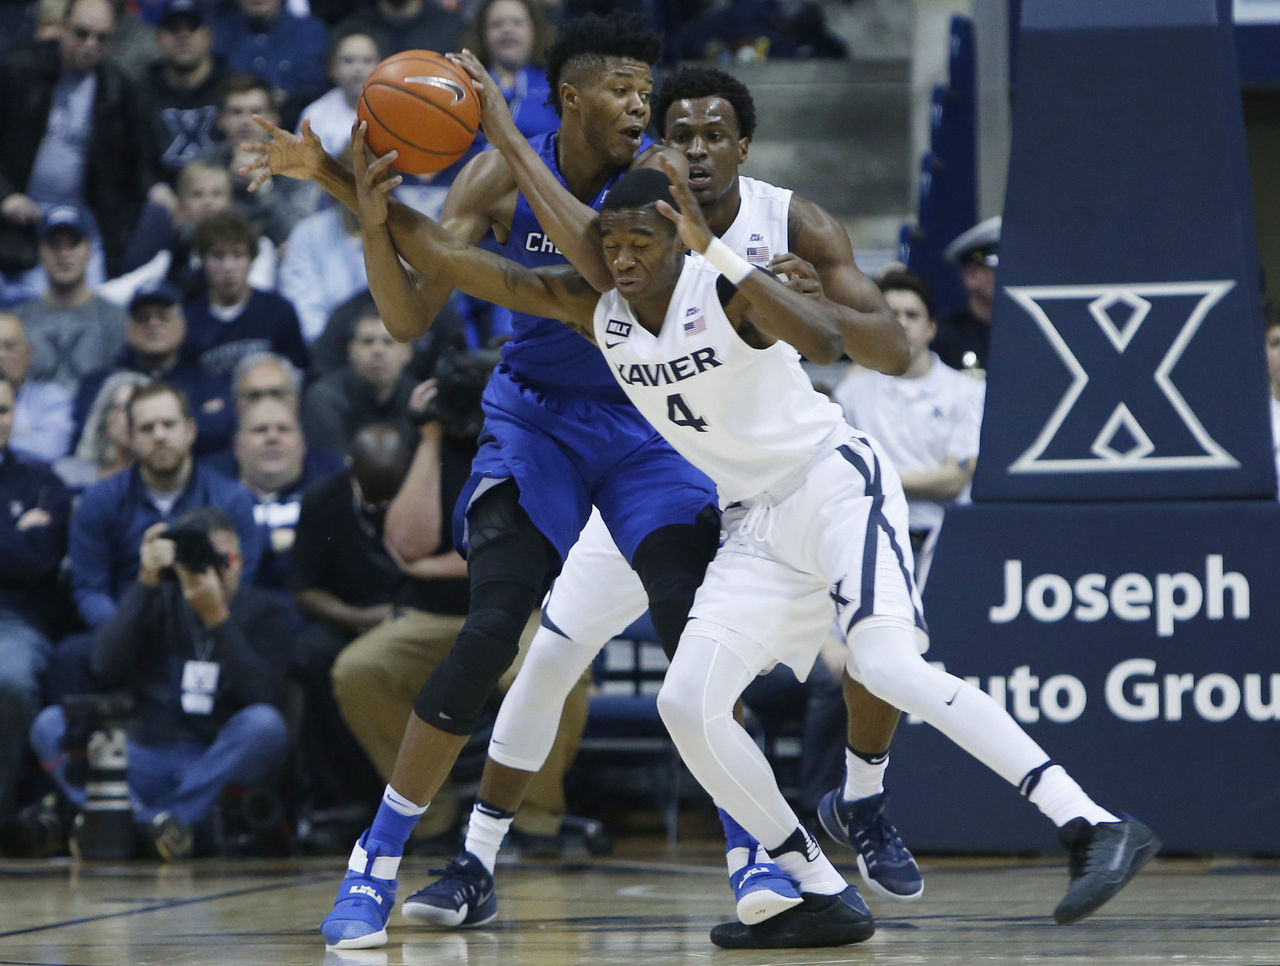 Cropped_2017-01-16t203025z_661265809_nocid_rtrmadp_3_ncaa-basketball-creighton-at-xavier